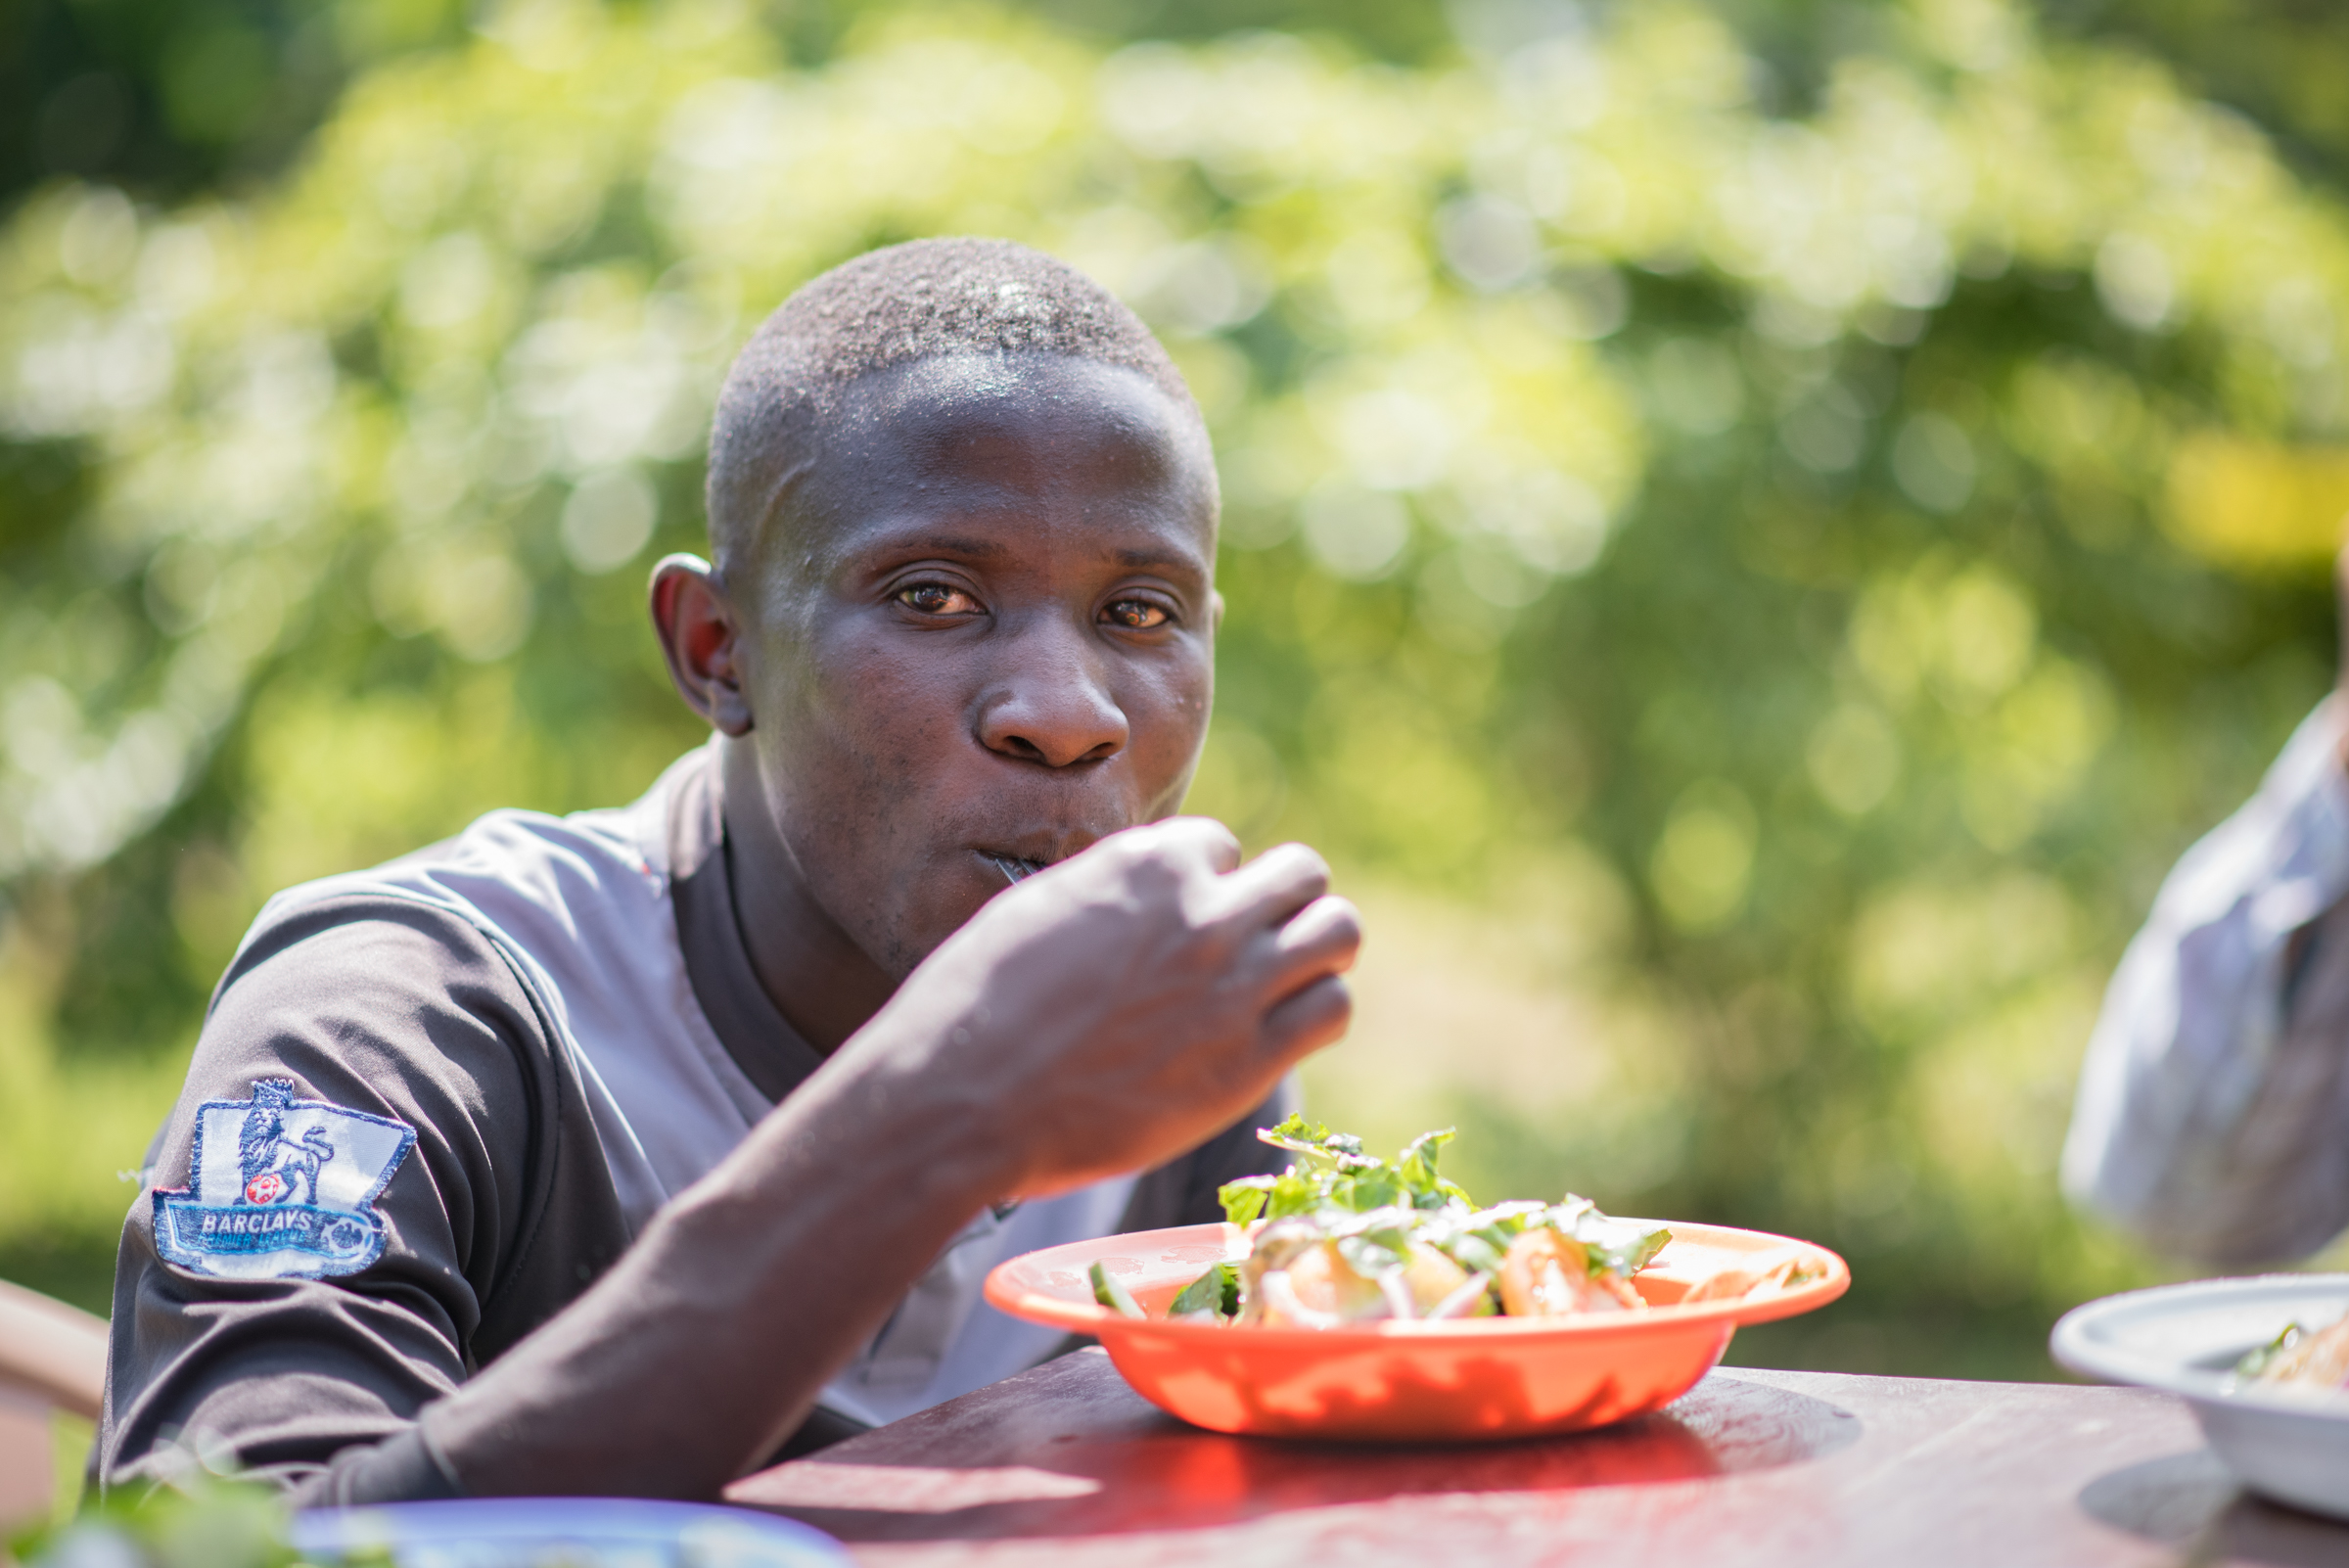 In Uganda, vegetables are not often consumed in raw form. Most nutrients diminish due to overcooking. We were able to introduce our friends to salad, with all of the ingredients grown on our property.